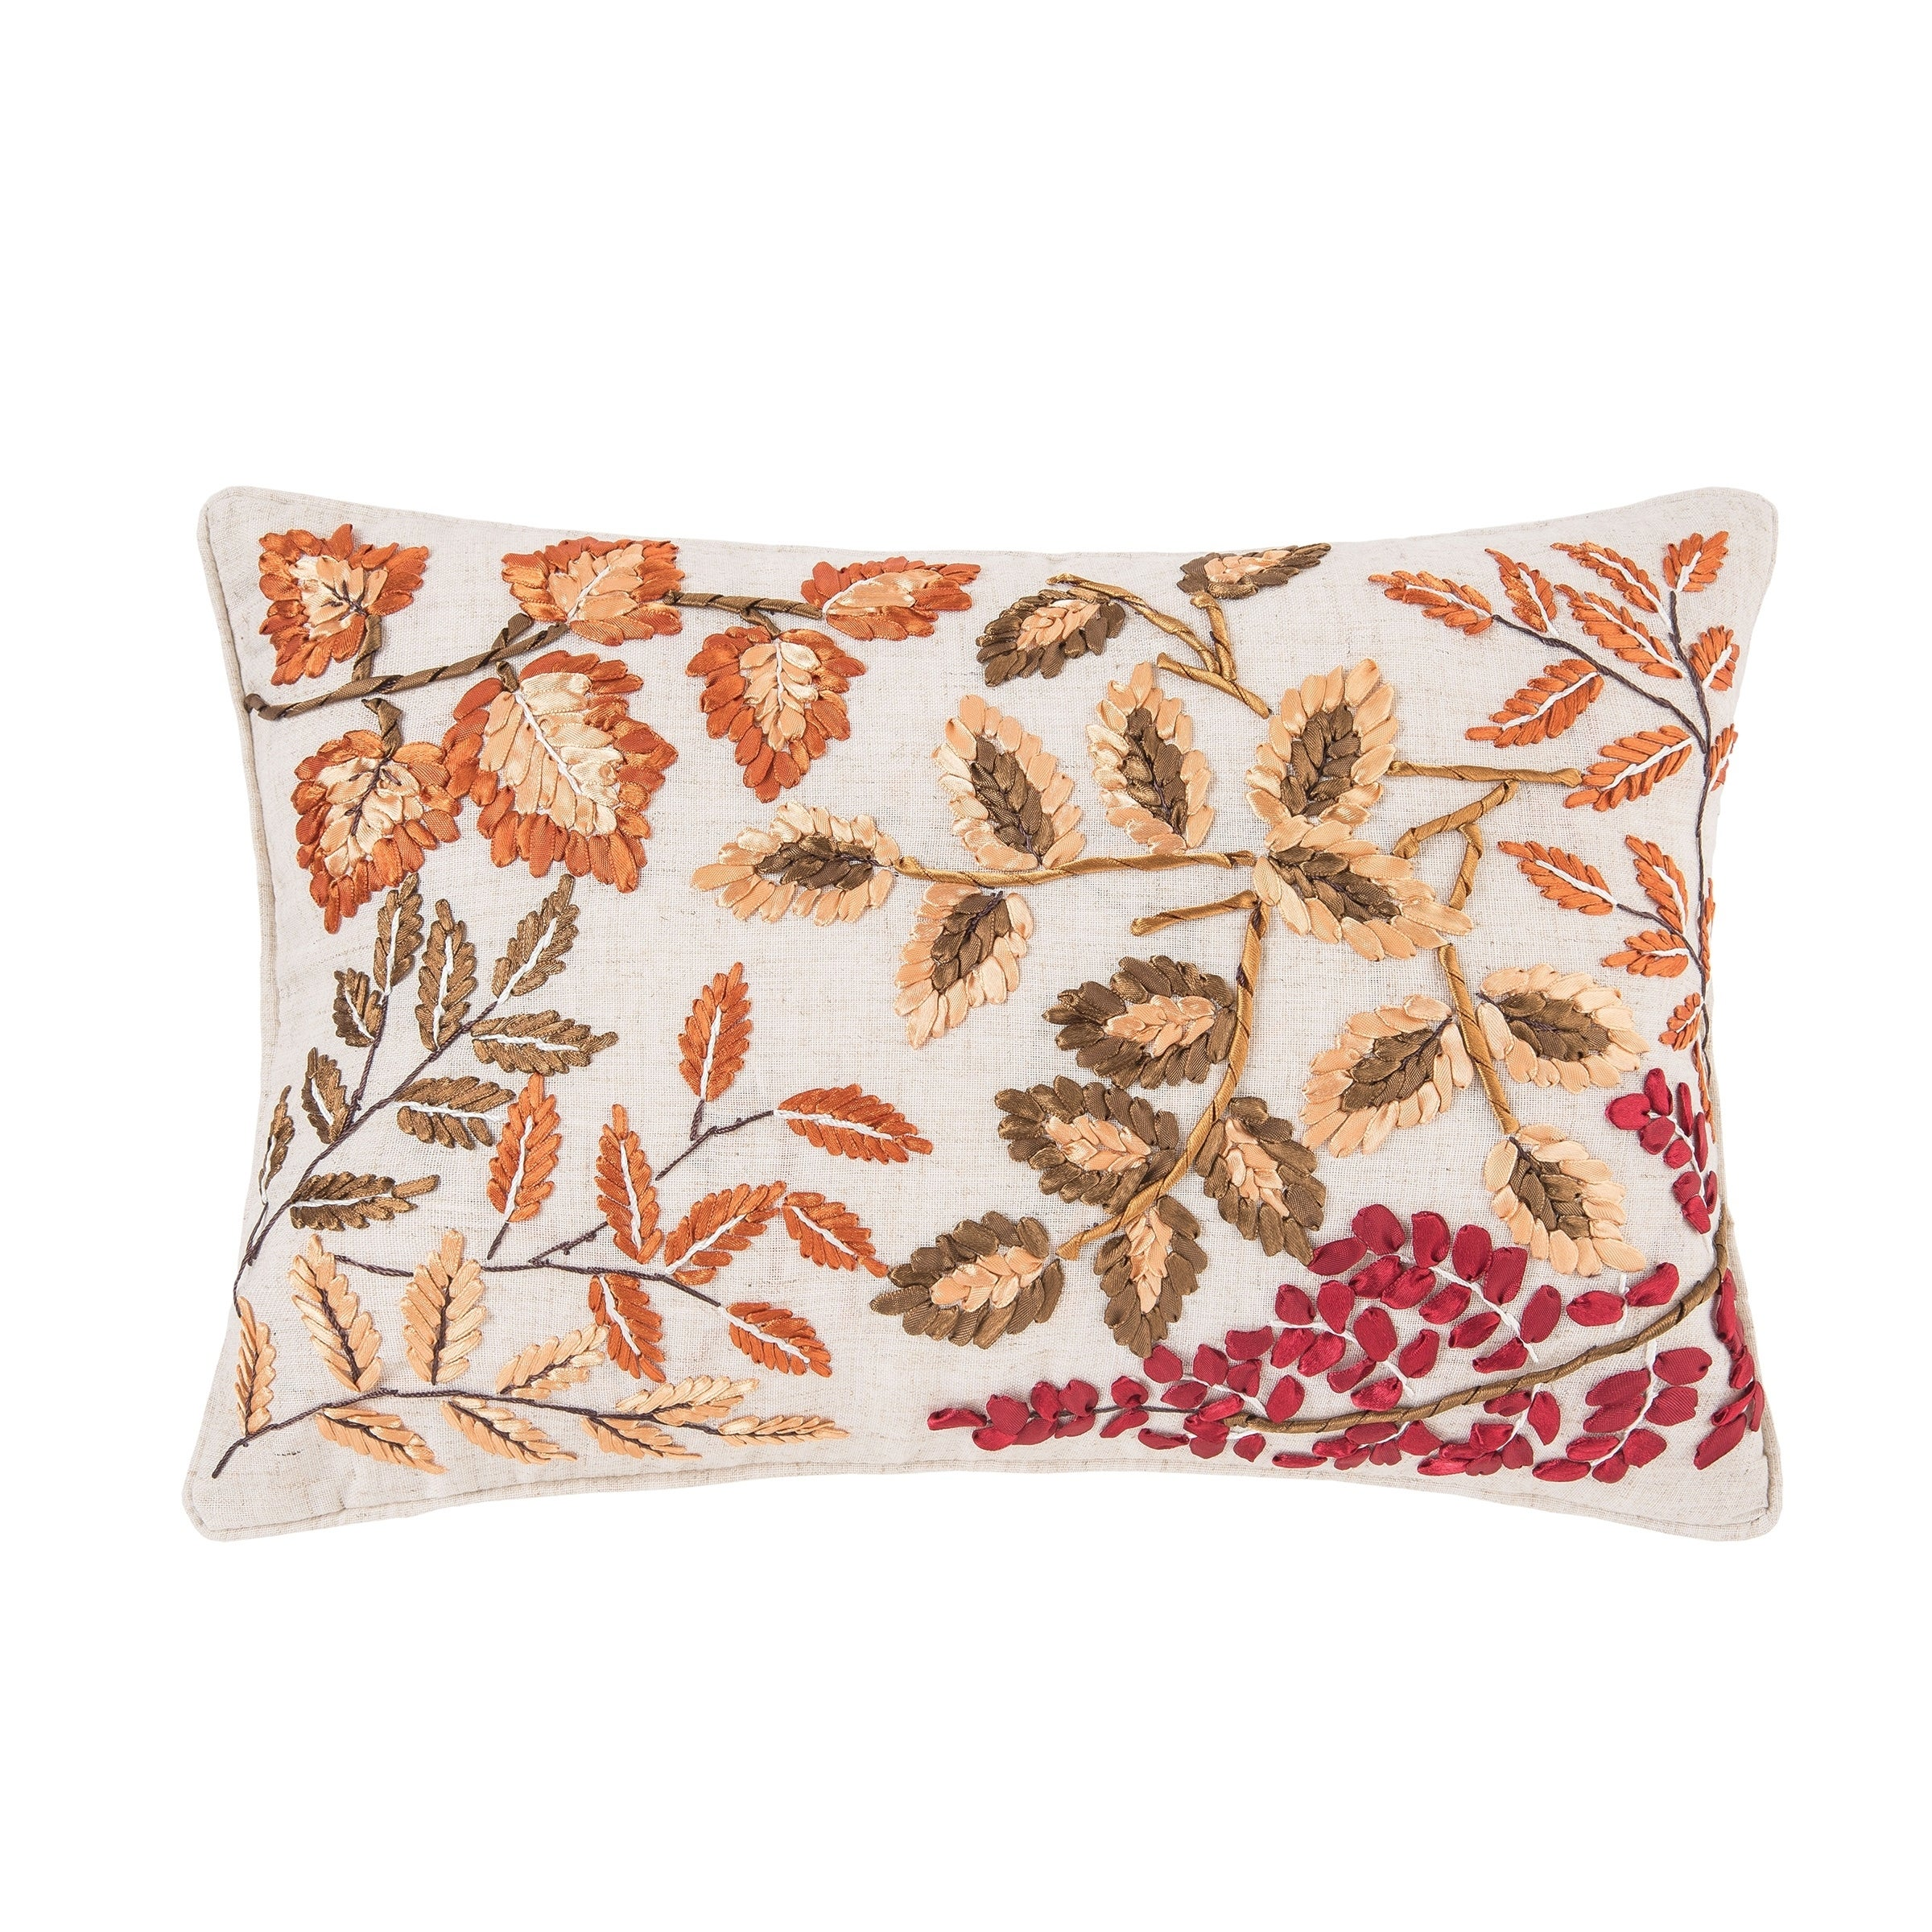 Falling Leaves 12 x 18 Pillow